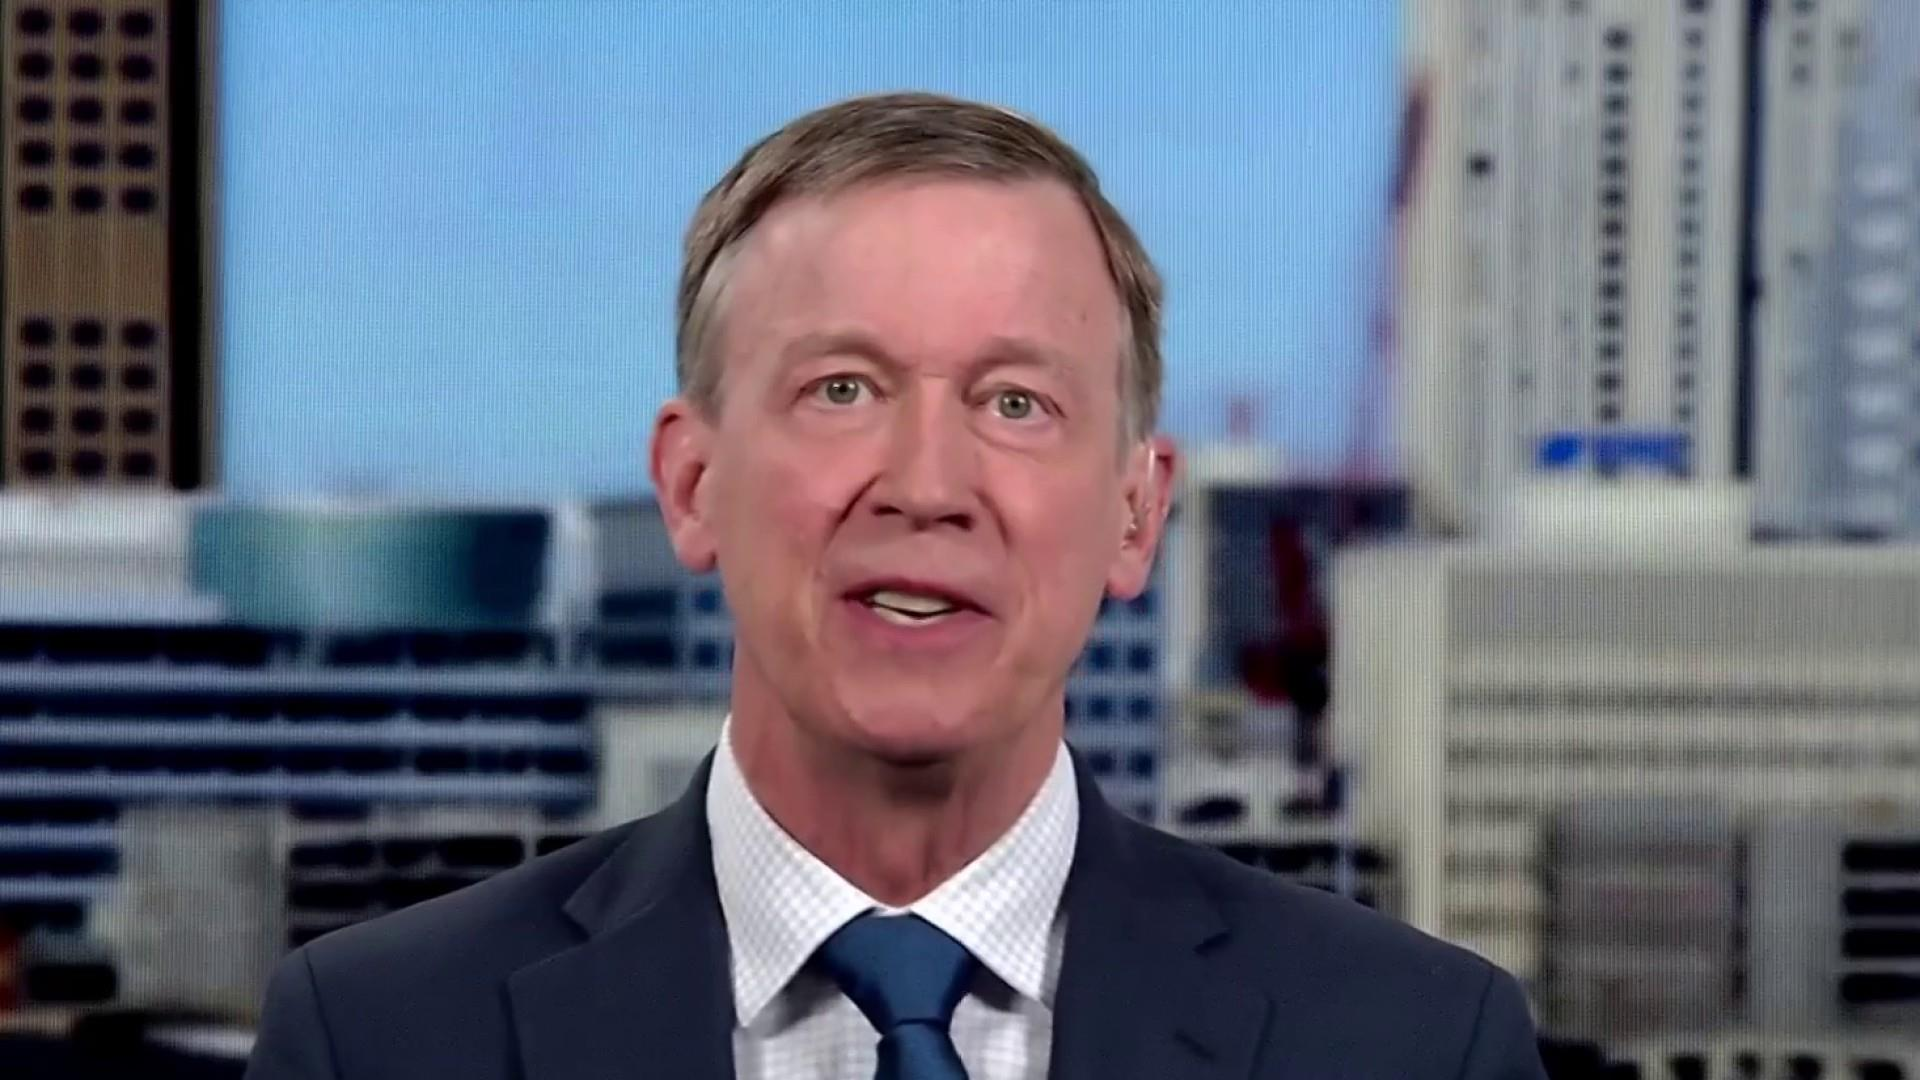 Fmr. Gov. Hickenlooper: Trump sowing 'division' on gun issues, tariffs